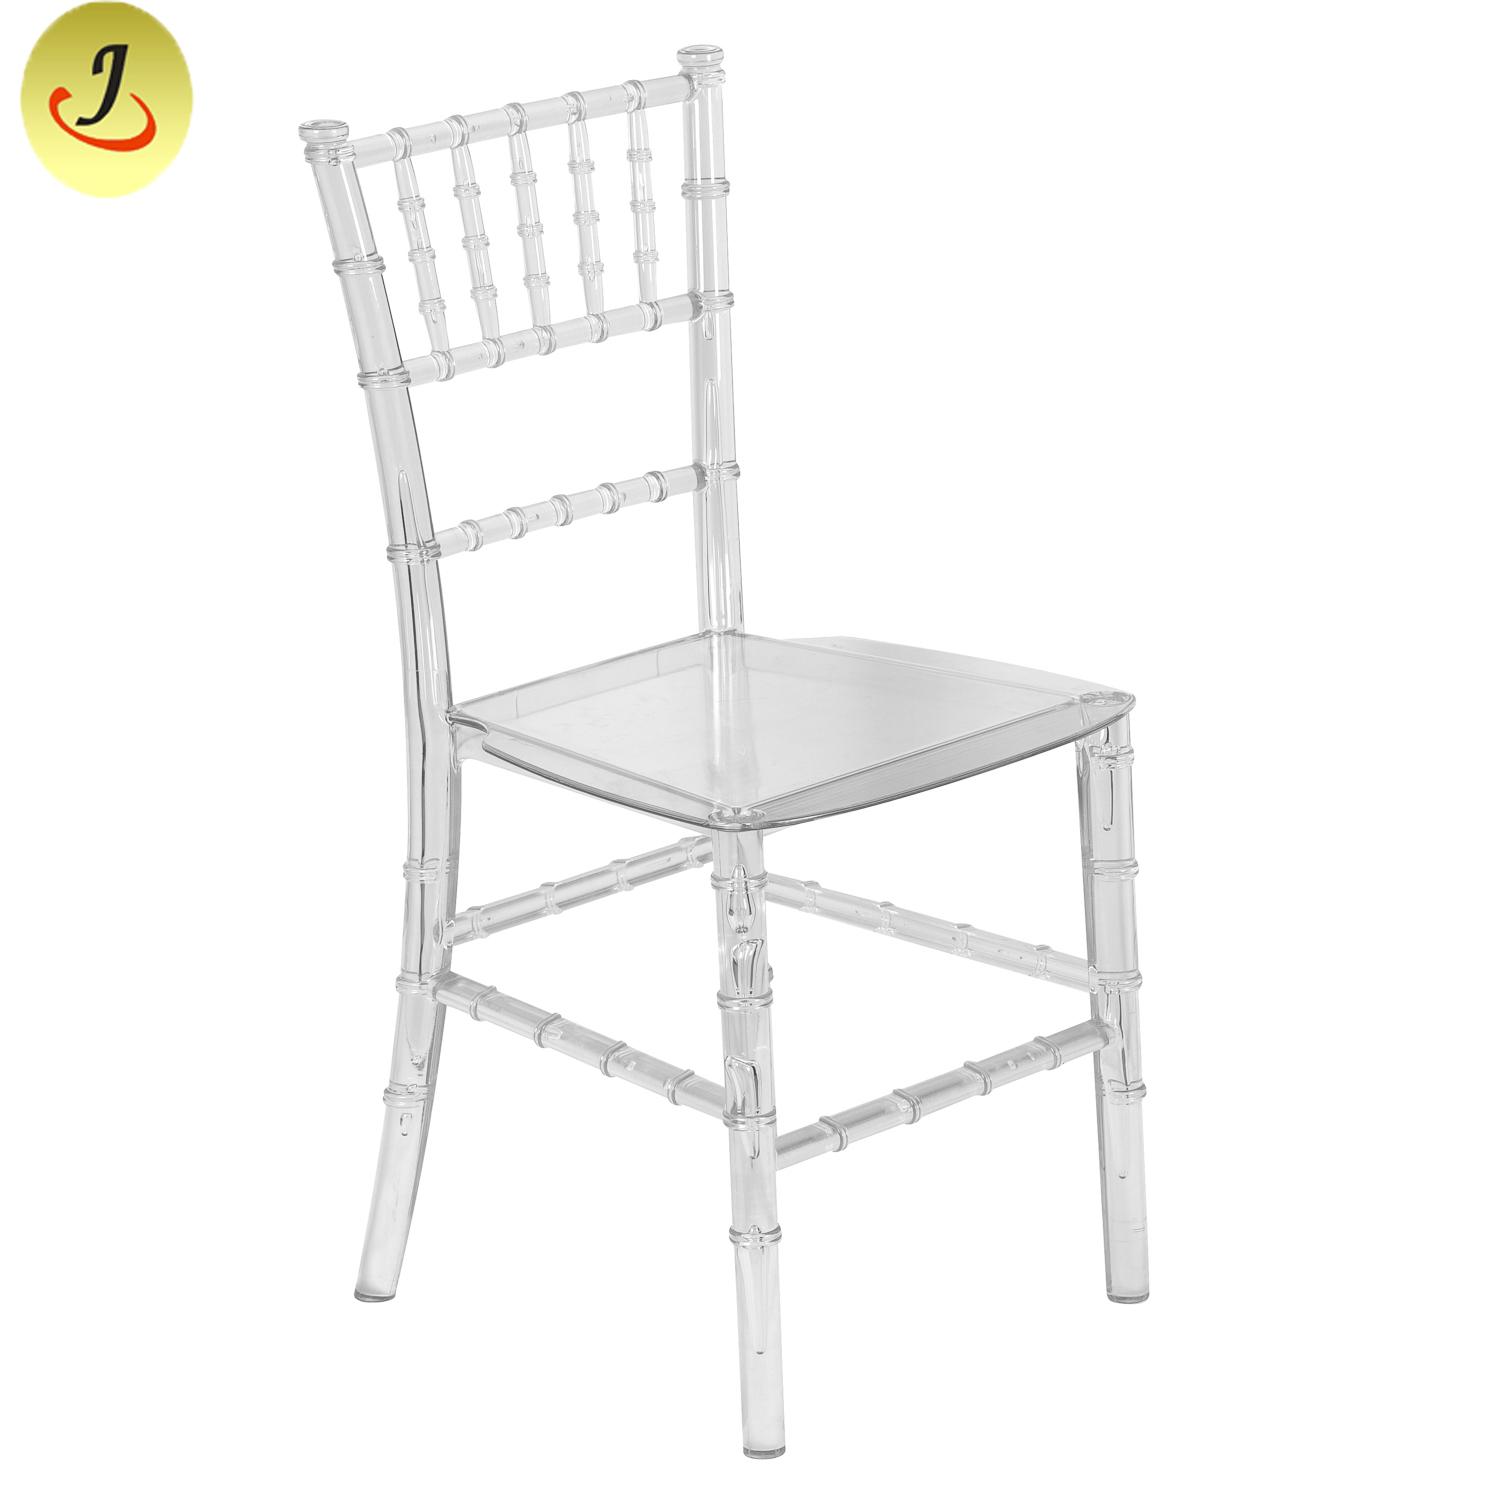 Outdoor Furniture Pink Kid Monobloc Resin Transparent Chiavari Chair SF-XH026 Featured Image